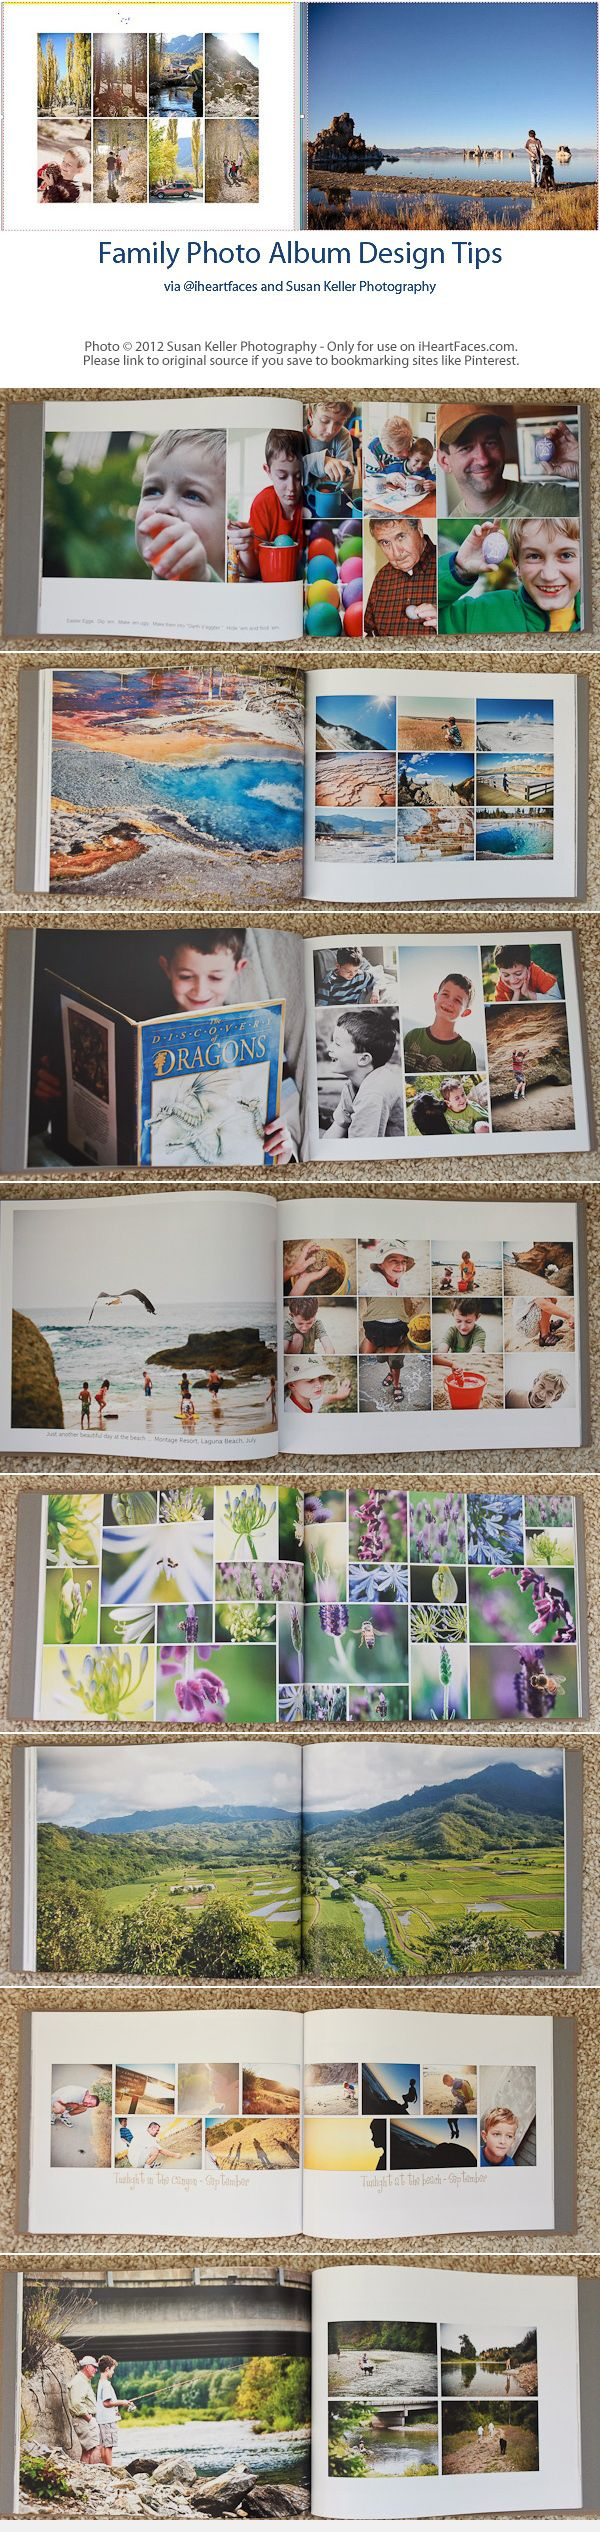 Design a family photo album with these great tips from Susan Keller. Free tutorial via I Heart Faces.